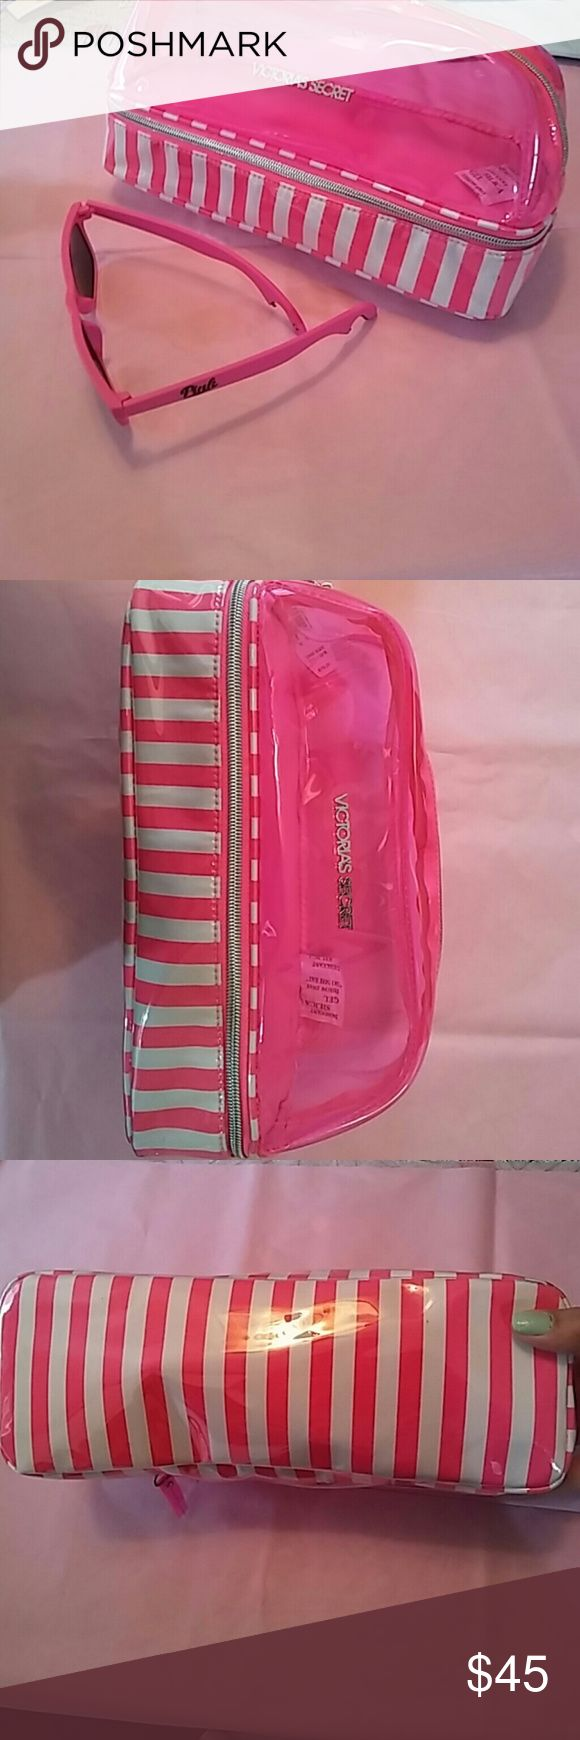 NWT VS MAKEUP BAG/ORGANIZER/TRAVEL BAG This bag is so convenient and cute, not to mention extremely roomy! It's very beachy ?? the whole top zips off as shown in the 7th picture. It even has a mirror in there for on the go applications! You could fit a hair straightener or curling iron in there if you wanted to! (Don't forget your thermal case though!) the top is a cool see through hot pink which also zips open as shown in 4th picture. If it were me I'd throw makeup in there perhaps! So many…